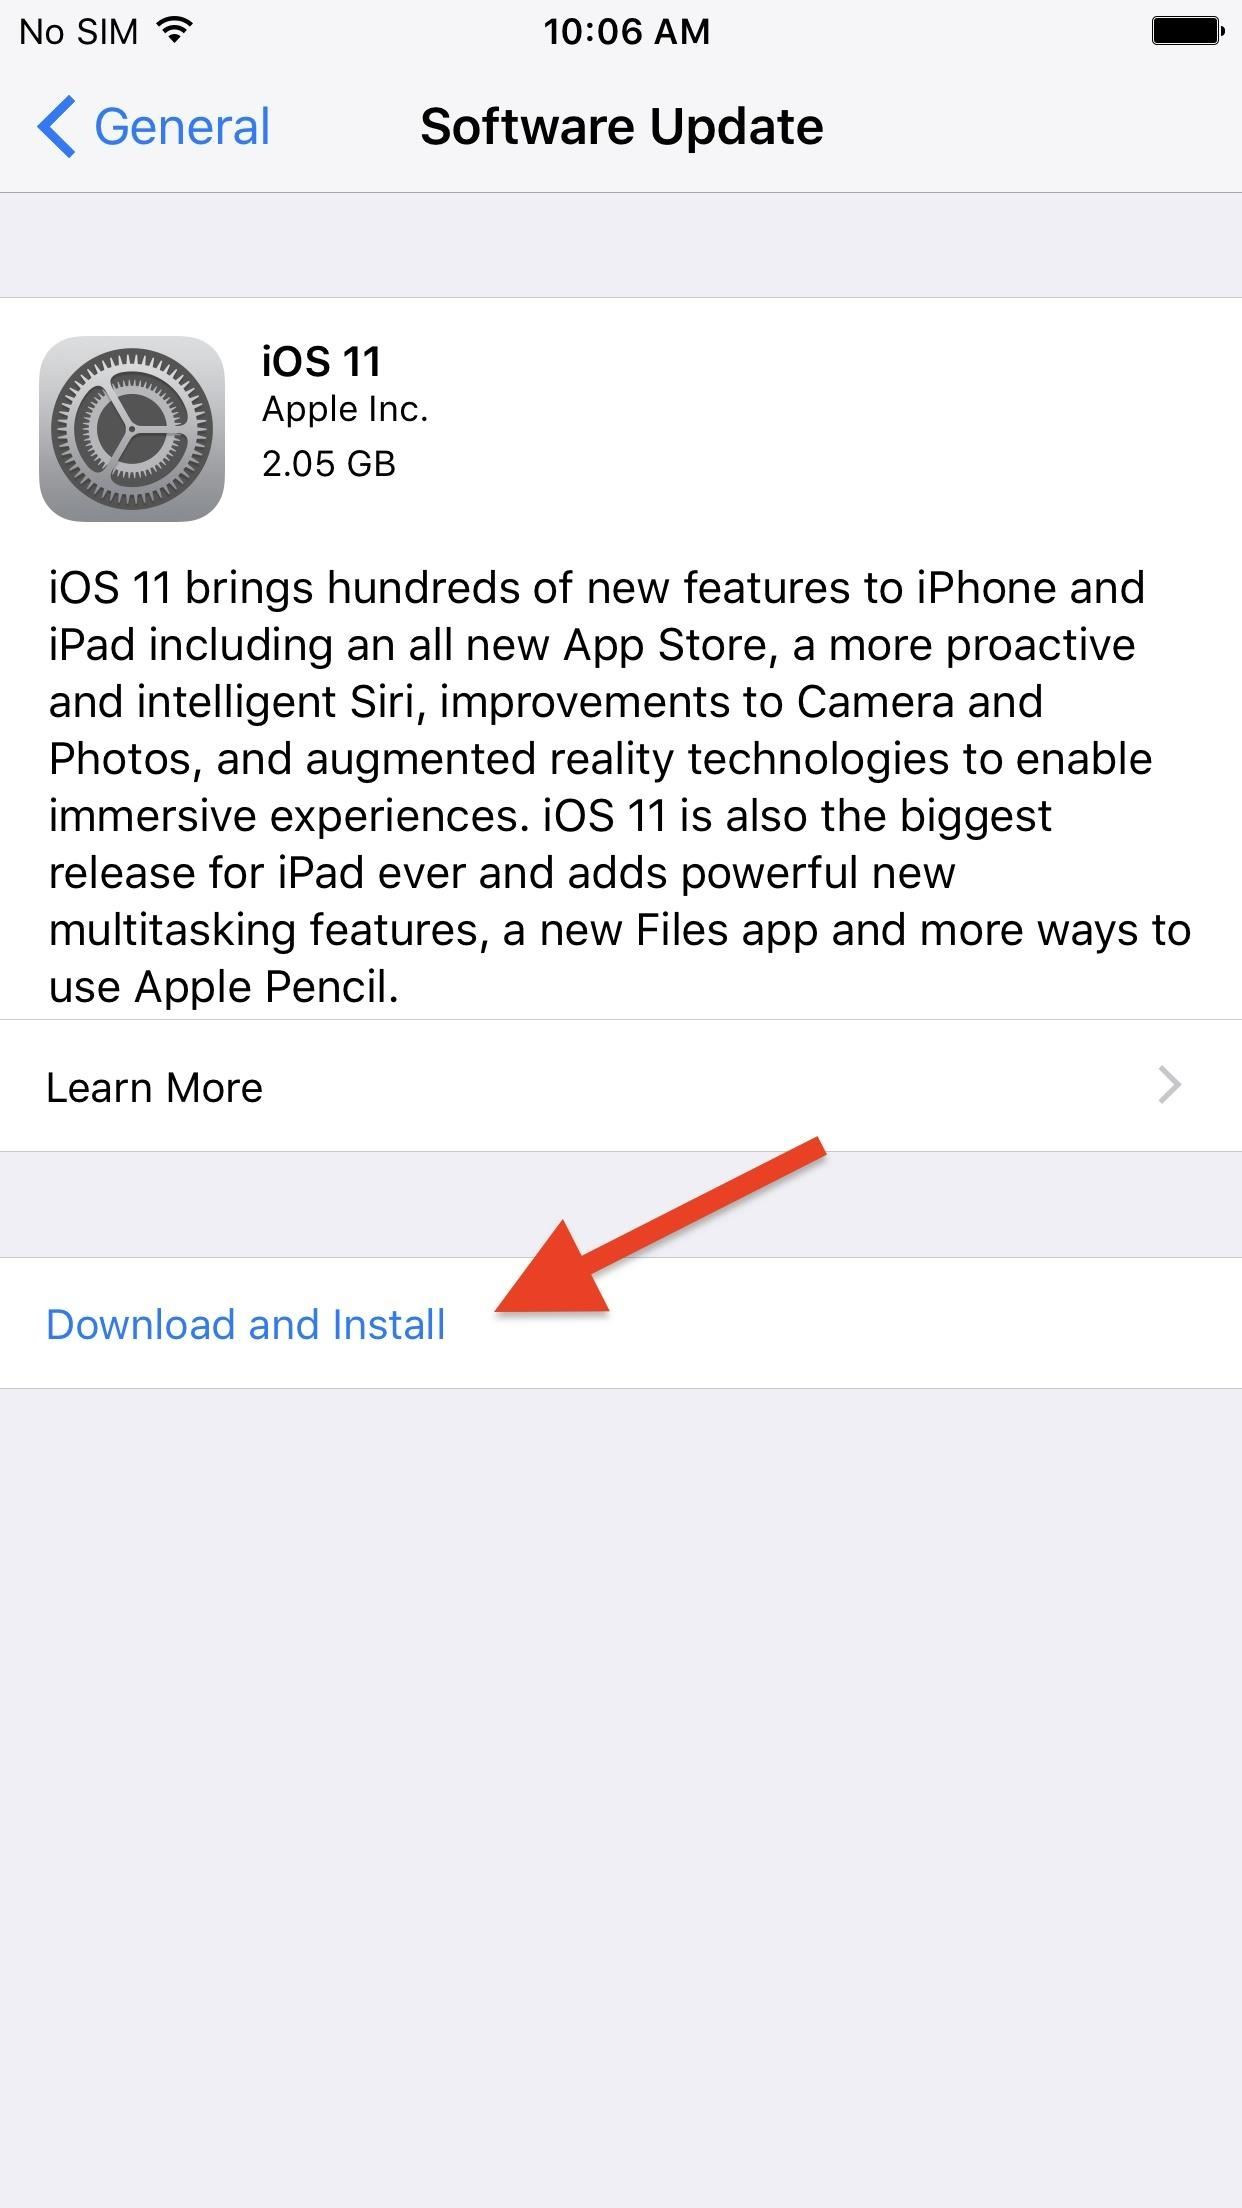 How to Download & Install iOS 11 on Your iPhone